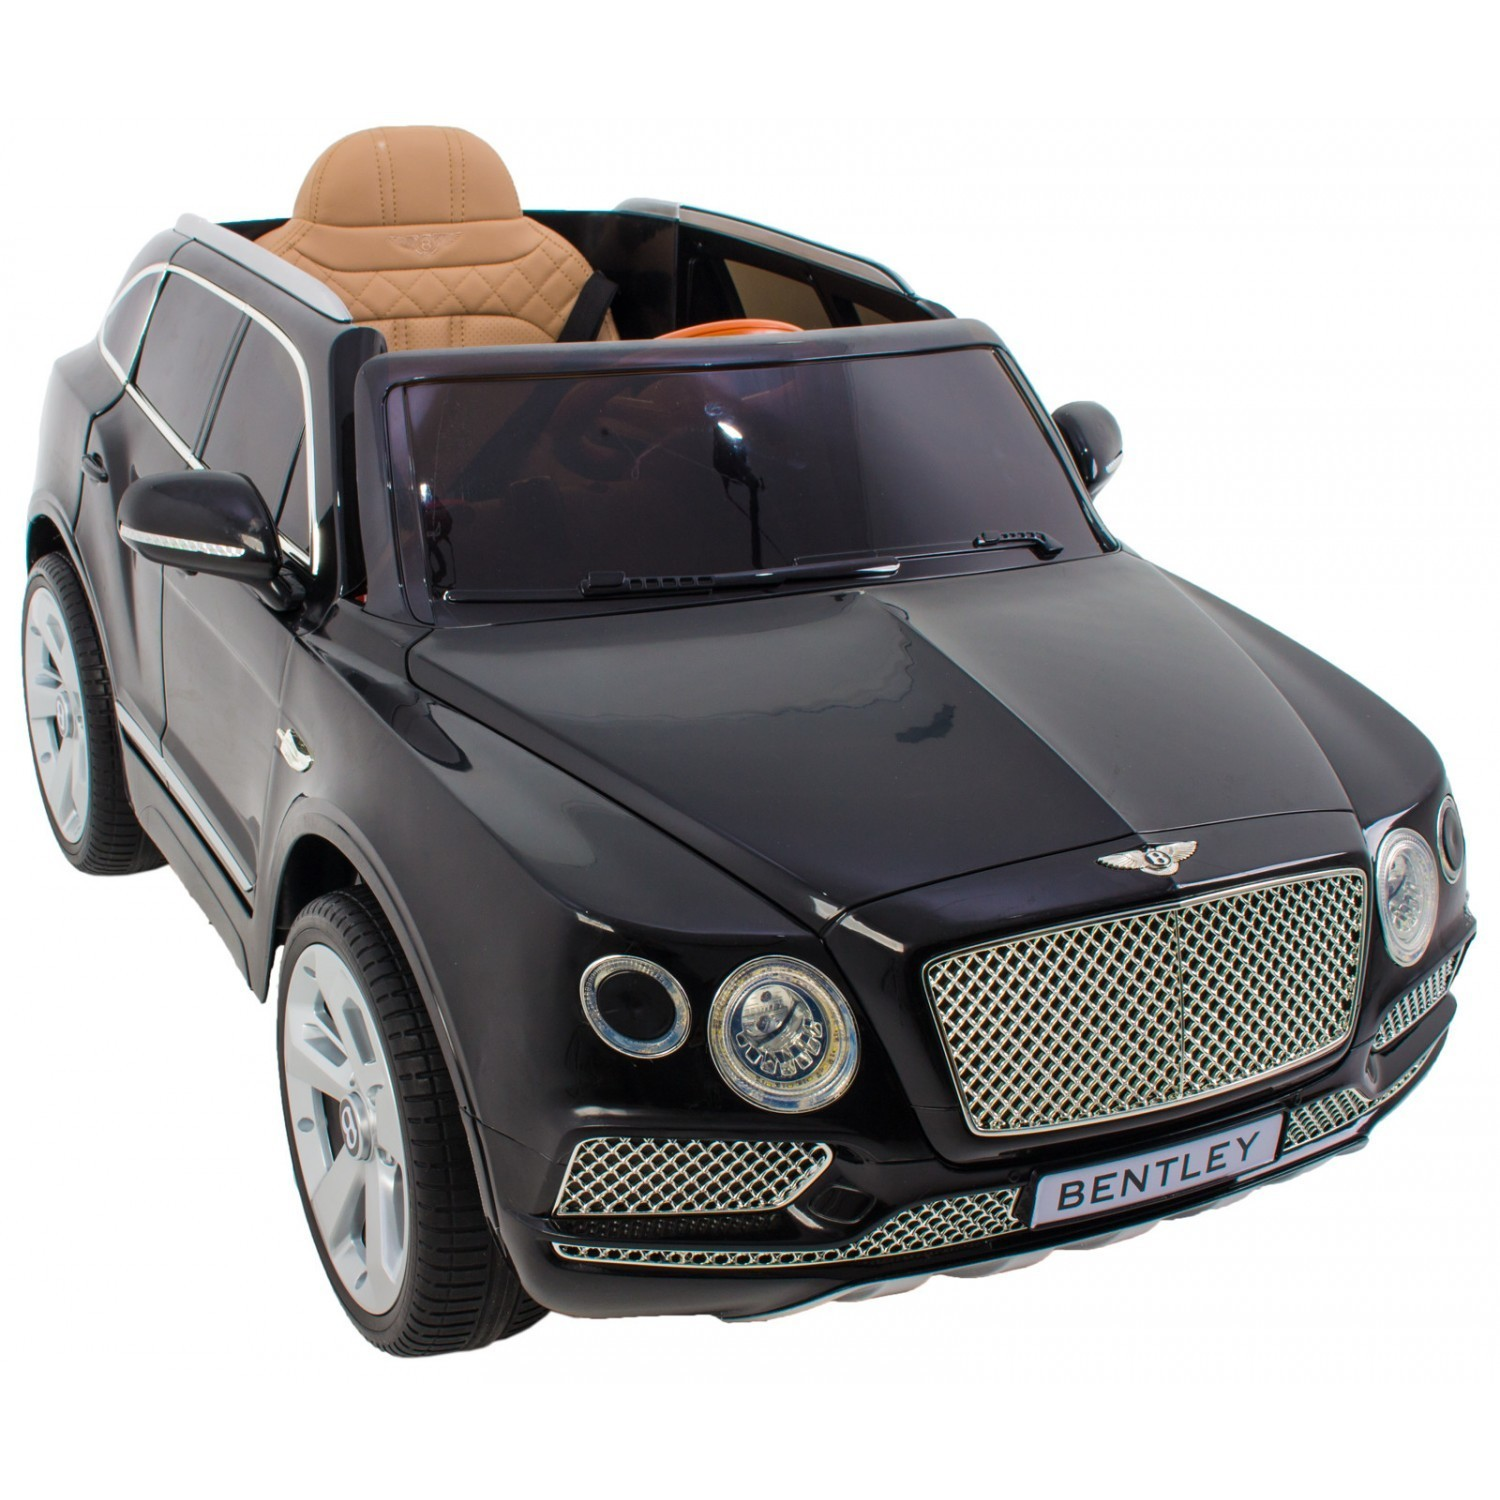 Cardi B Gets Bentley Bentayga Toy Car For Unborn Daughter